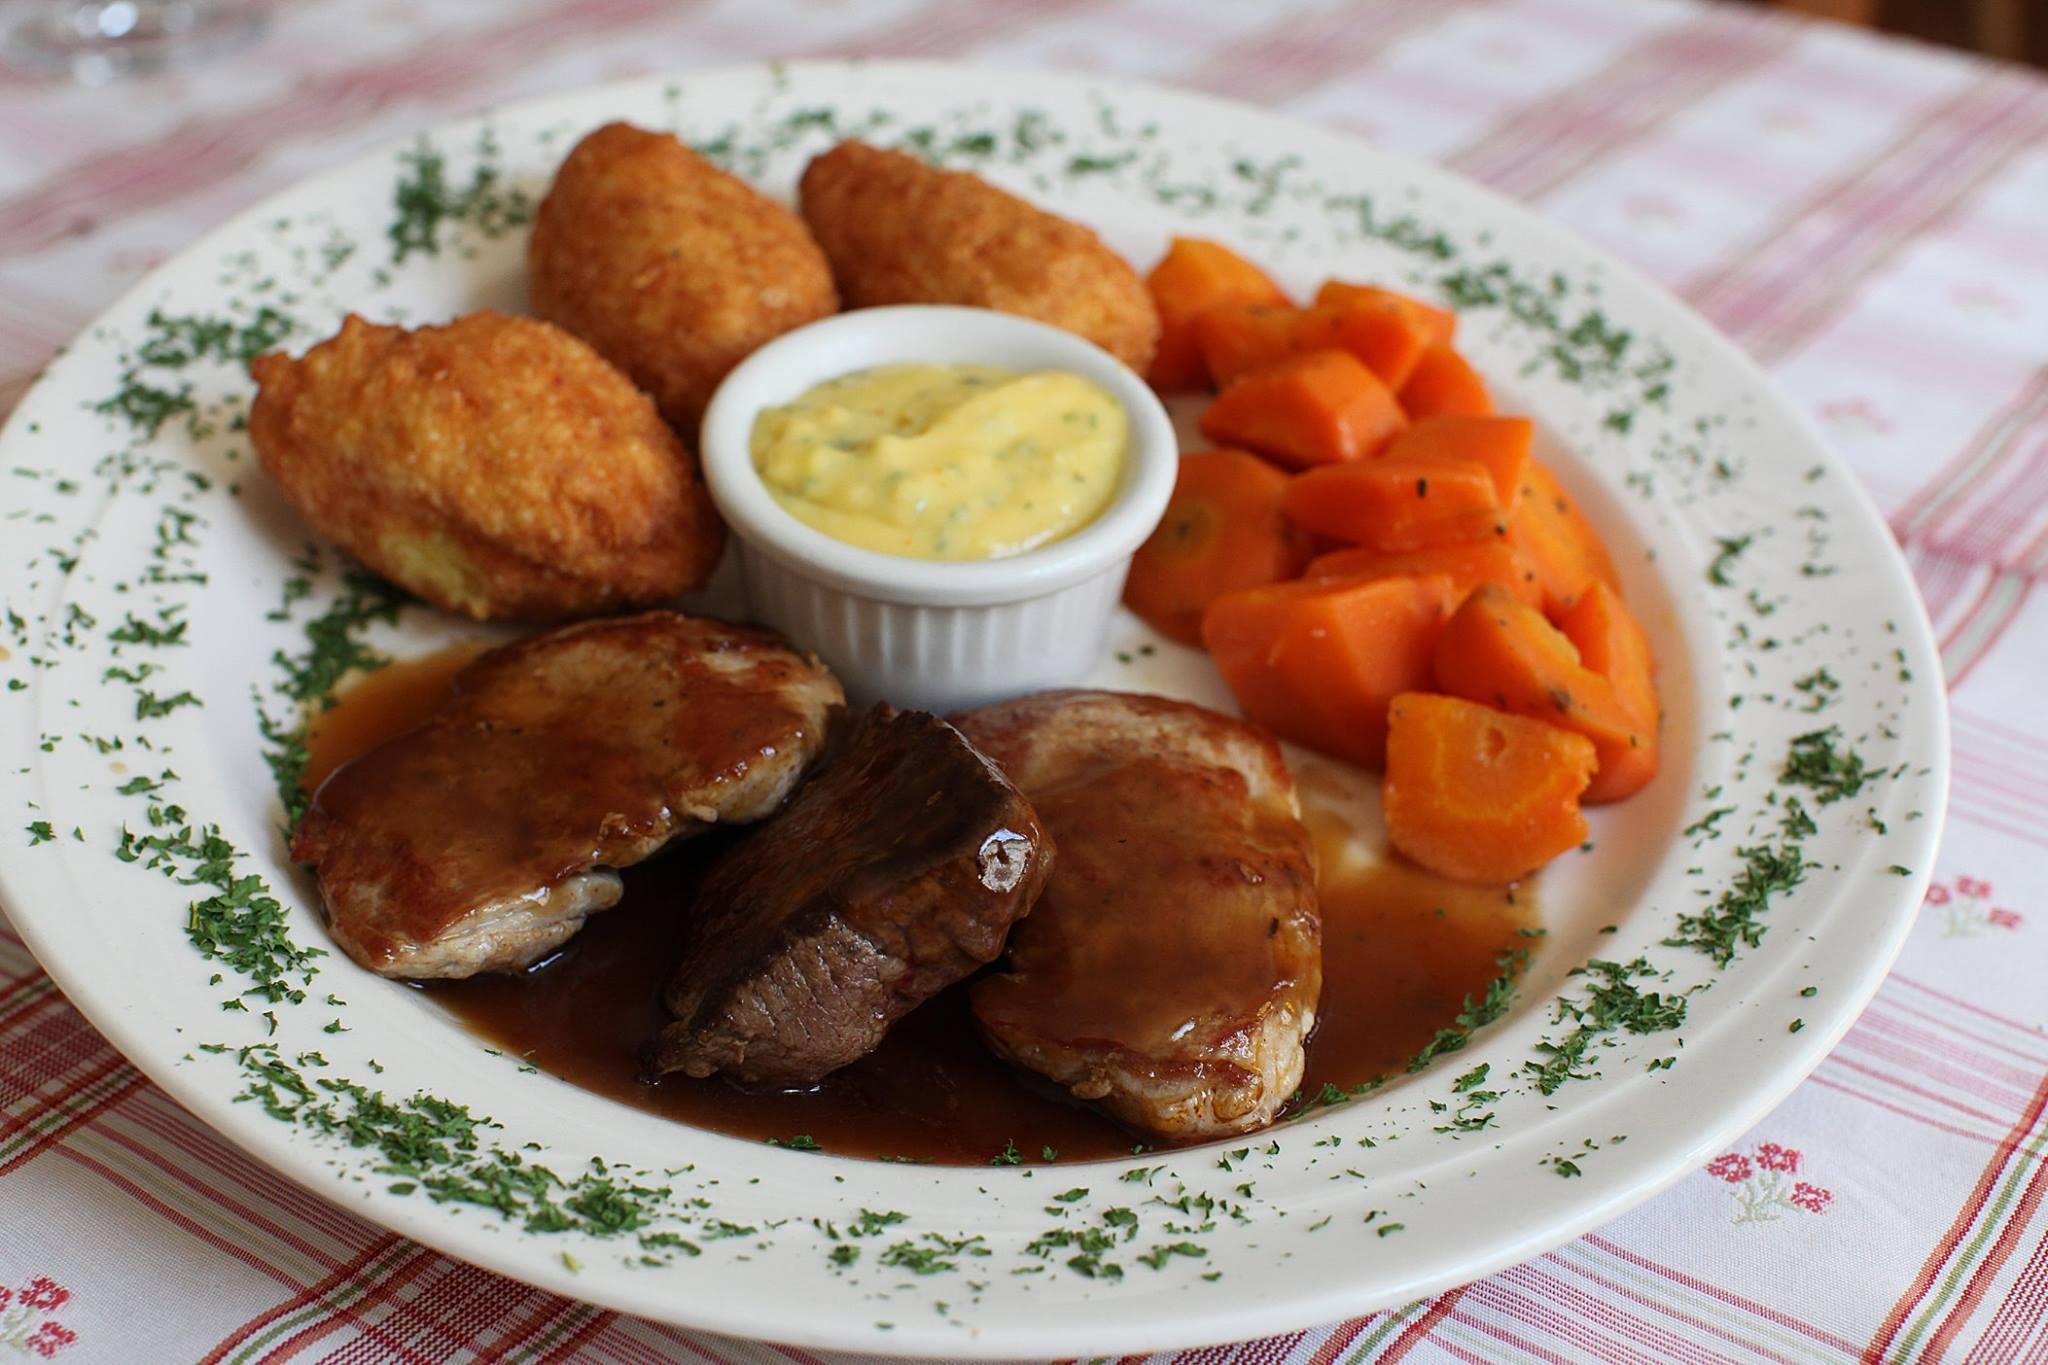 Pork and Beef Medallions